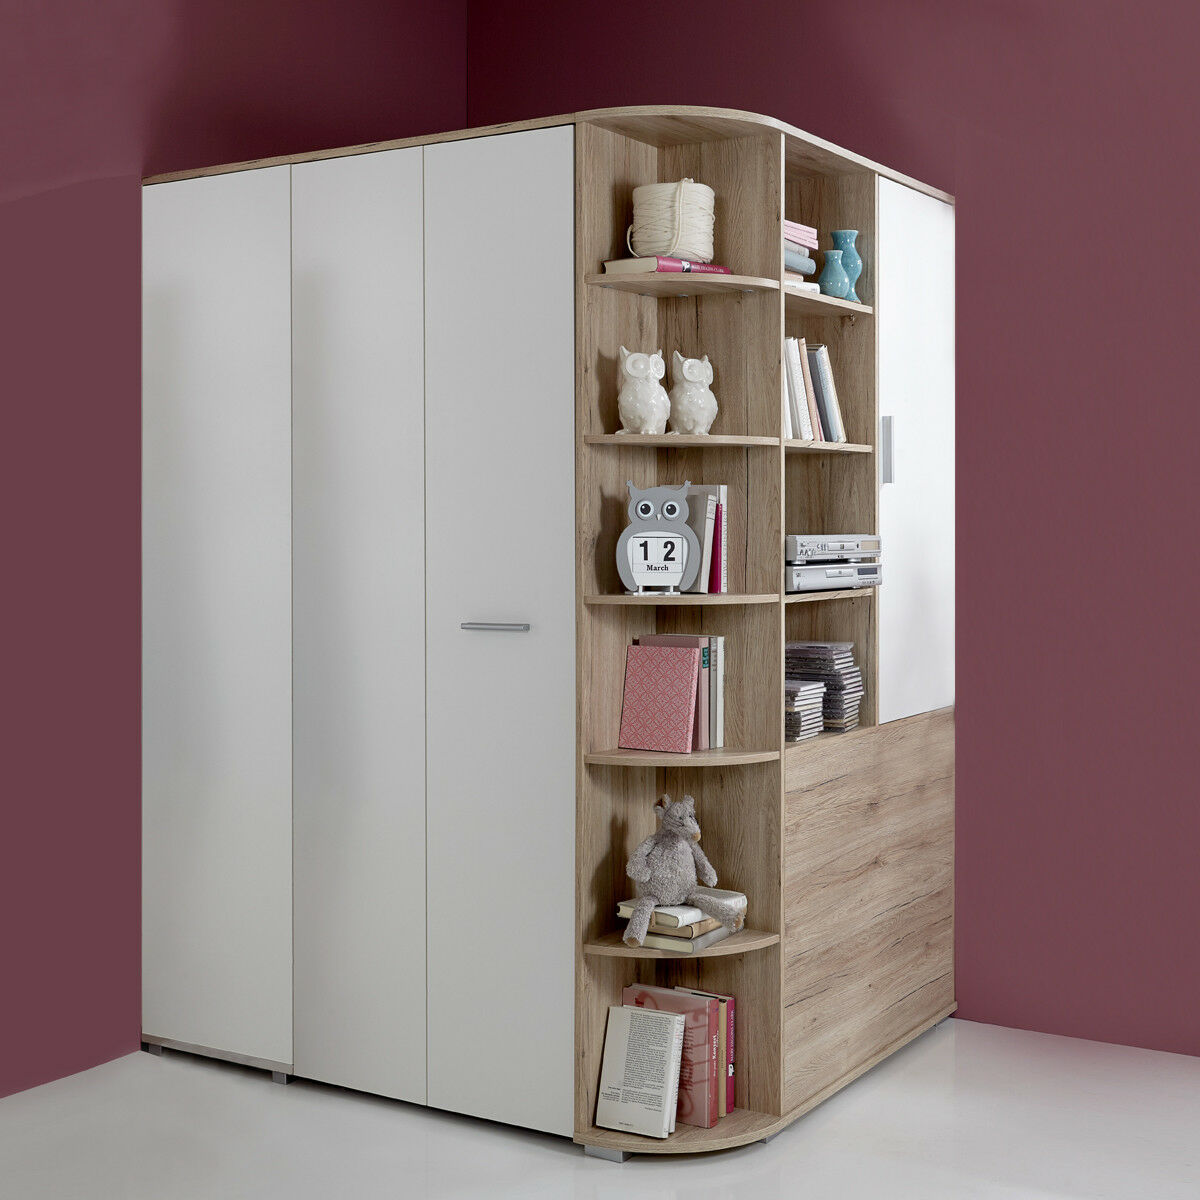 eckschrank joker begehbarer kleiderschrank in san remo eiche alpinwei eur 489 95 picclick de. Black Bedroom Furniture Sets. Home Design Ideas